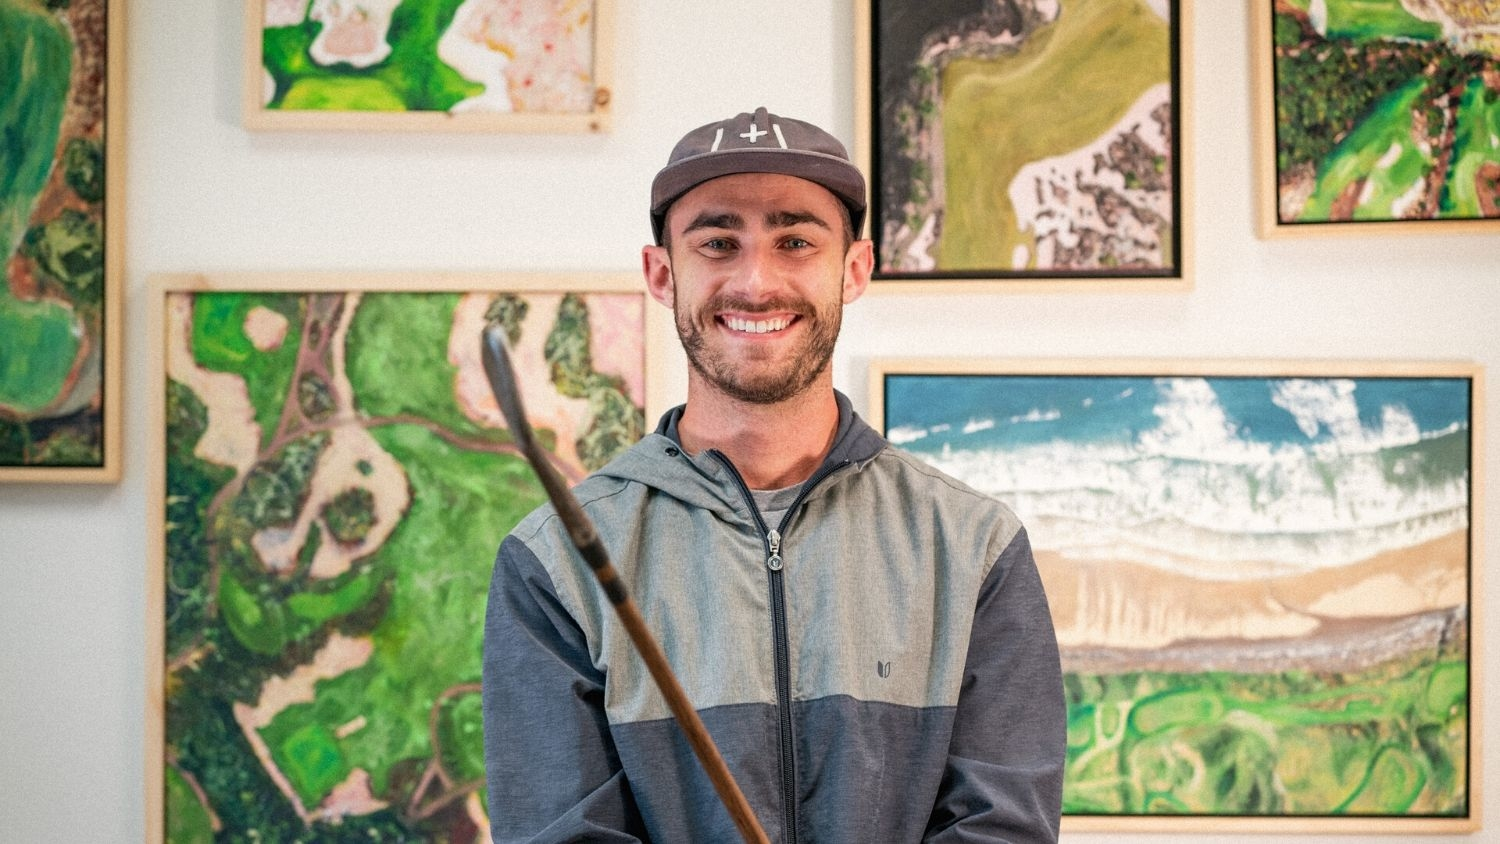 Luke Davis - Tee Time: A Conversation With a Golf Entrepreneur and Designer - Parks Recreation and Tourism Management NC State